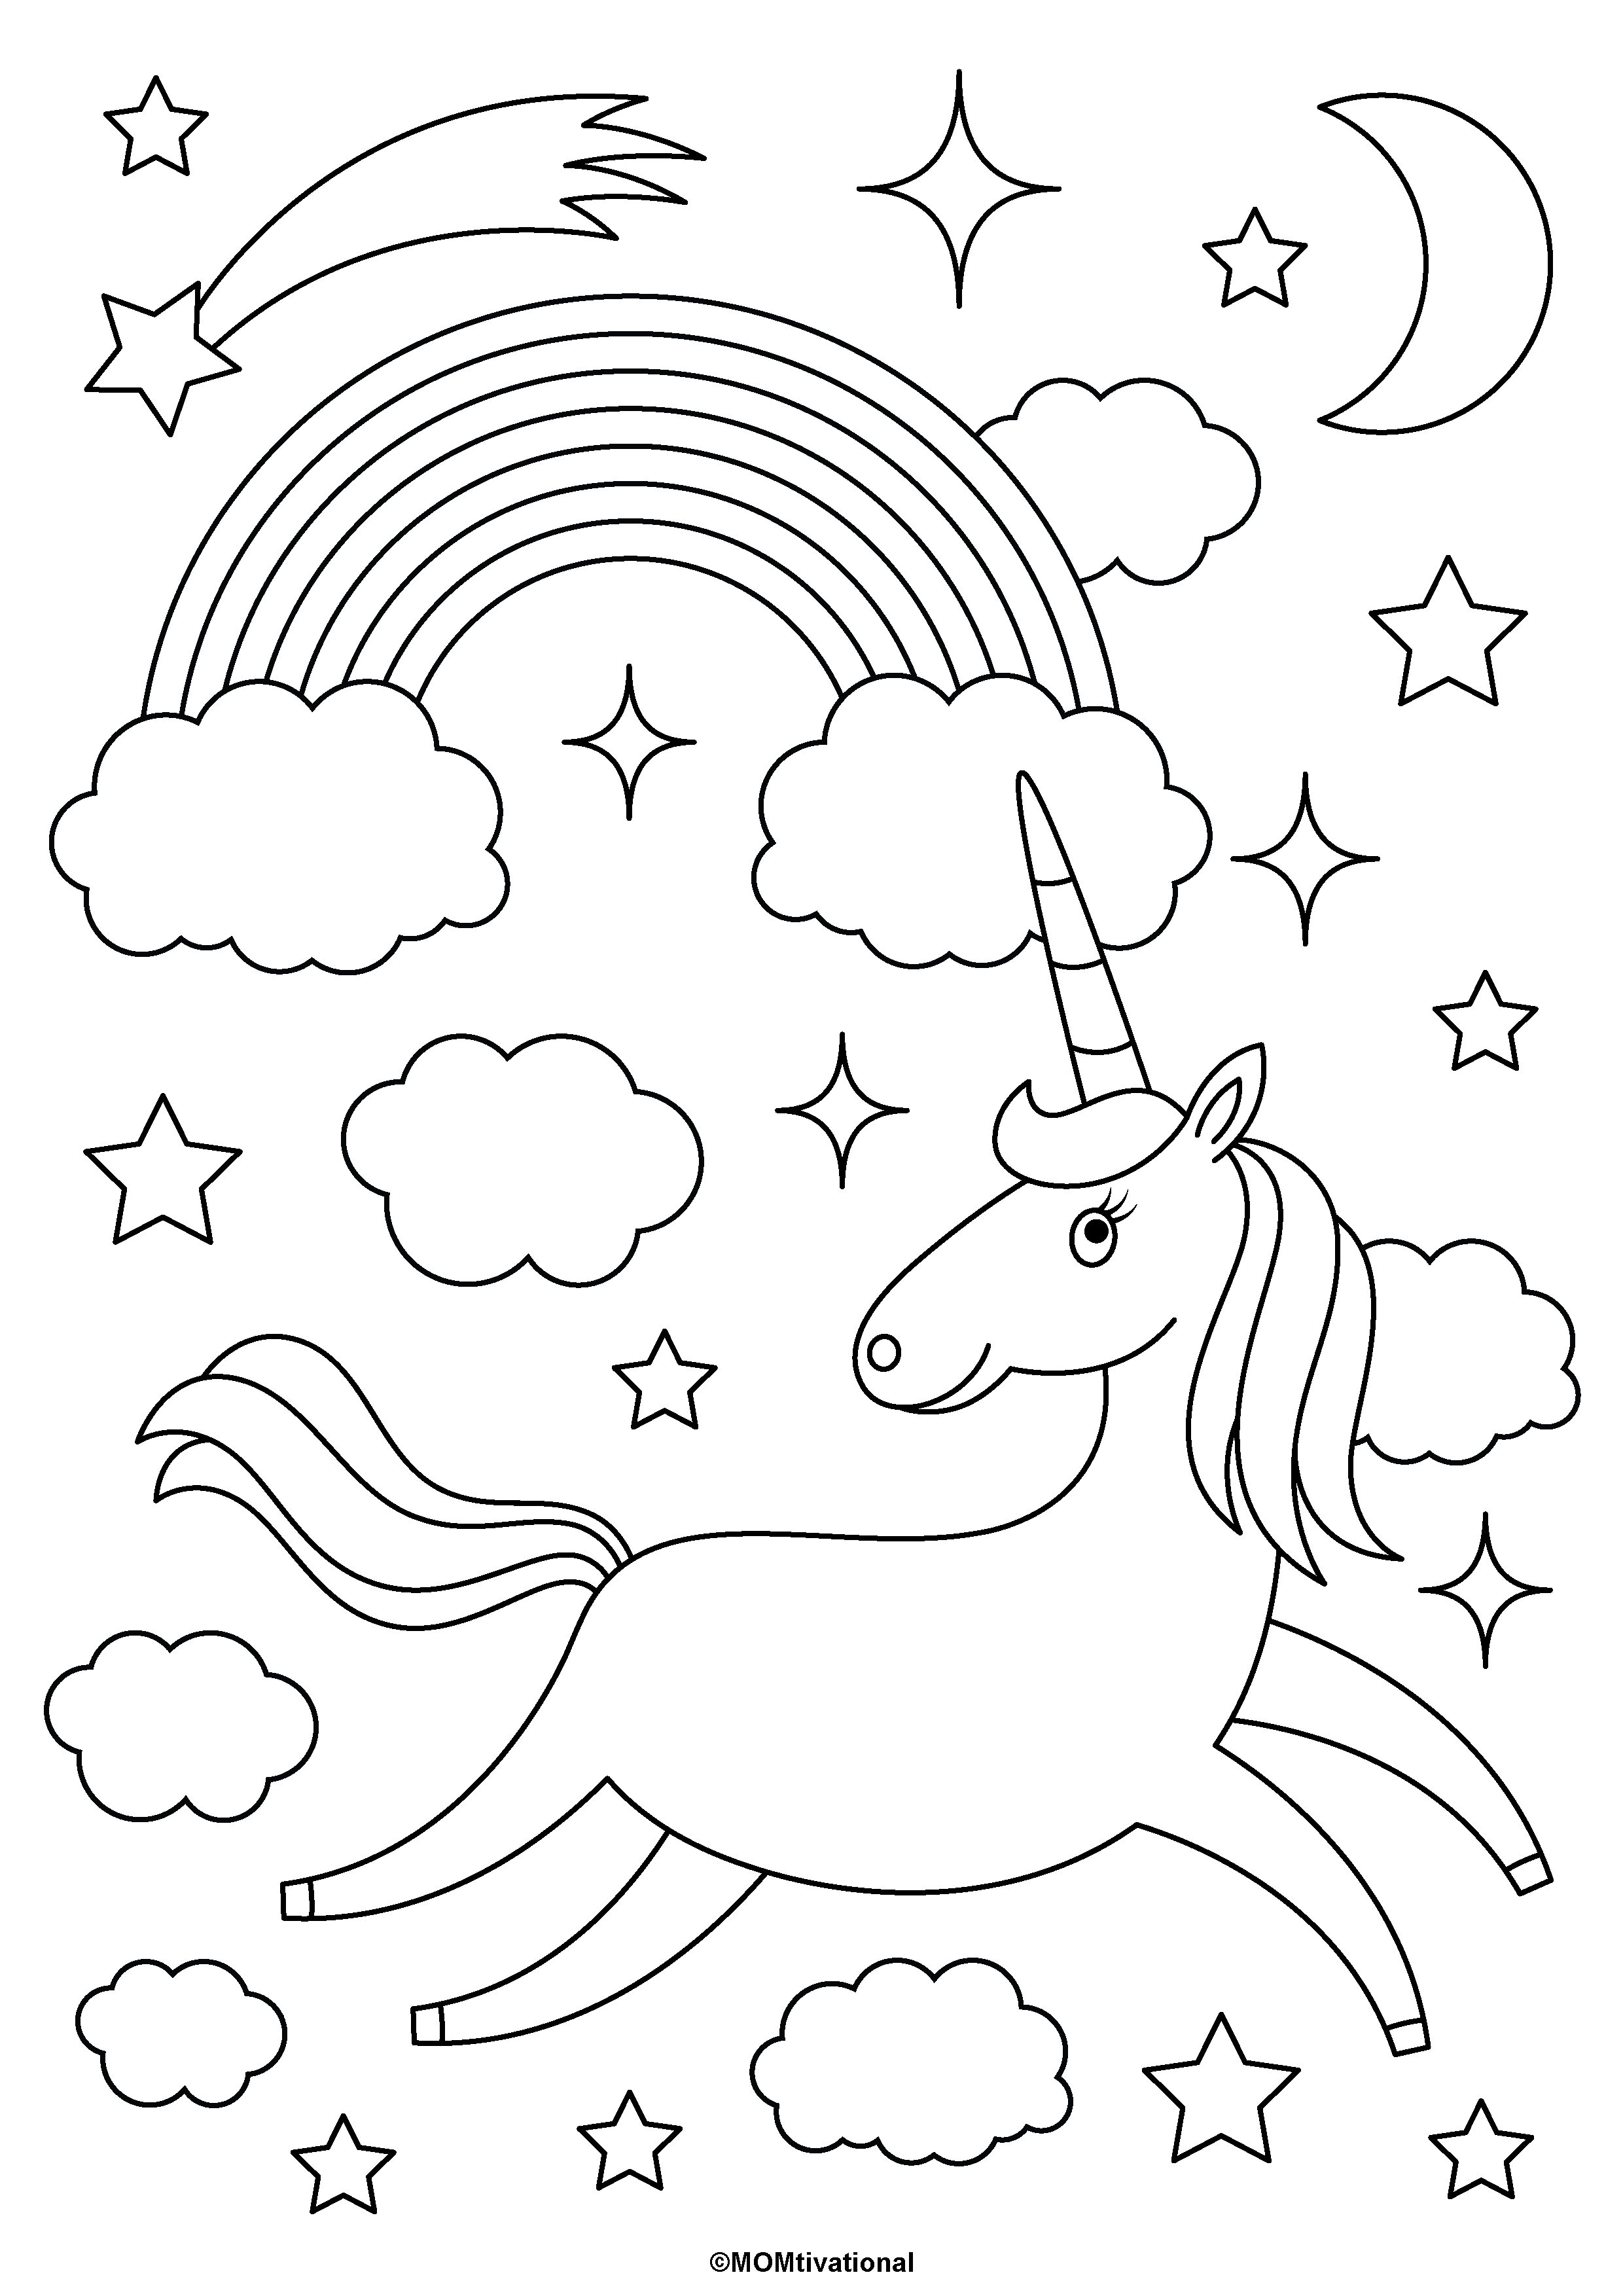 Fun And Free Unicorn Coloring Pages For Kids Momtivational Unicorn Coloring Pages Love Coloring Pages Free Kids Coloring Pages